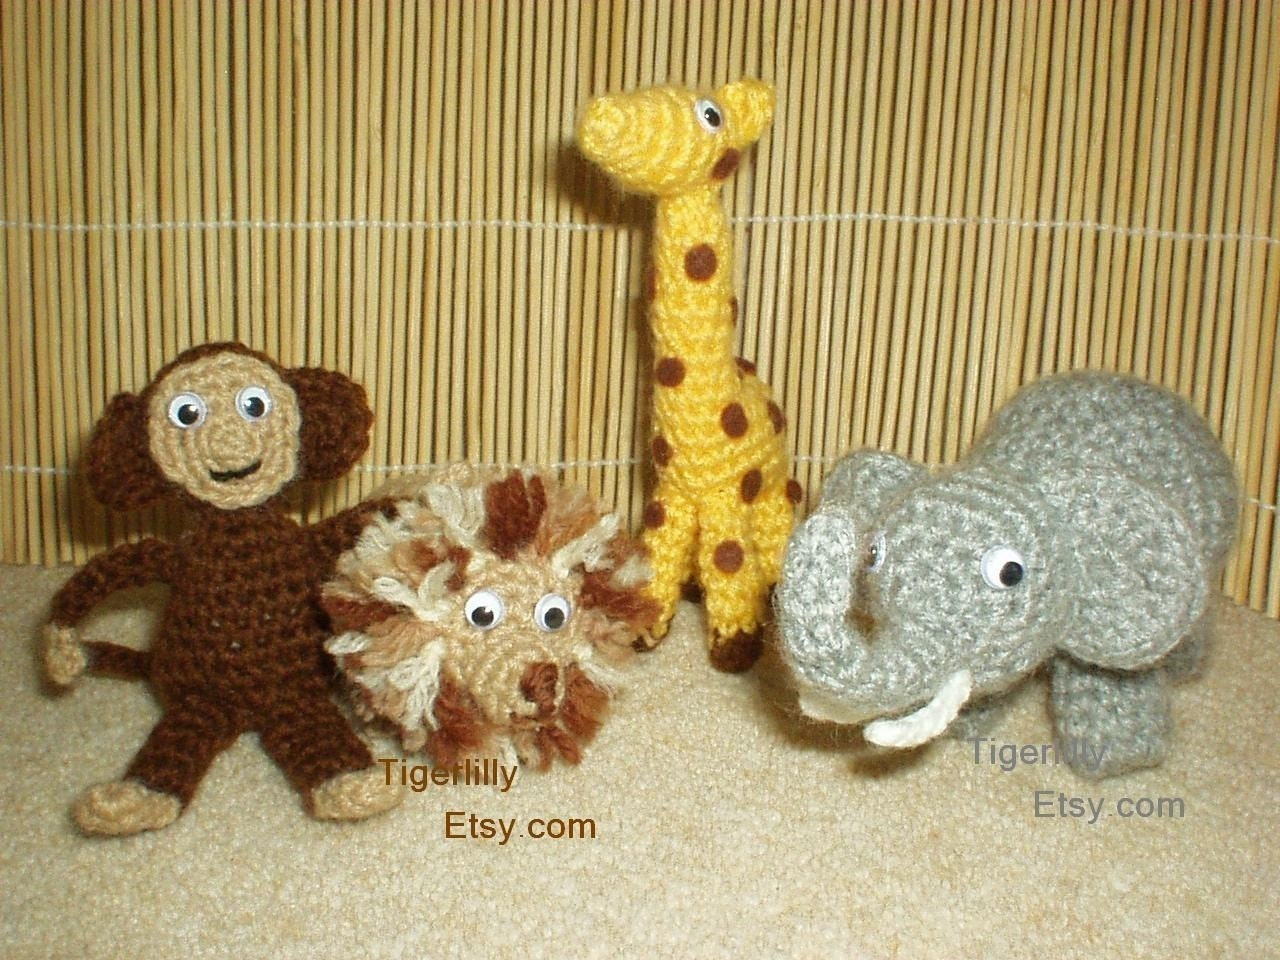 Free Giraffe Crochet Afghan Pattern : FREE CROCHET GIRAFFE PATTERN ? Crochet For Beginners